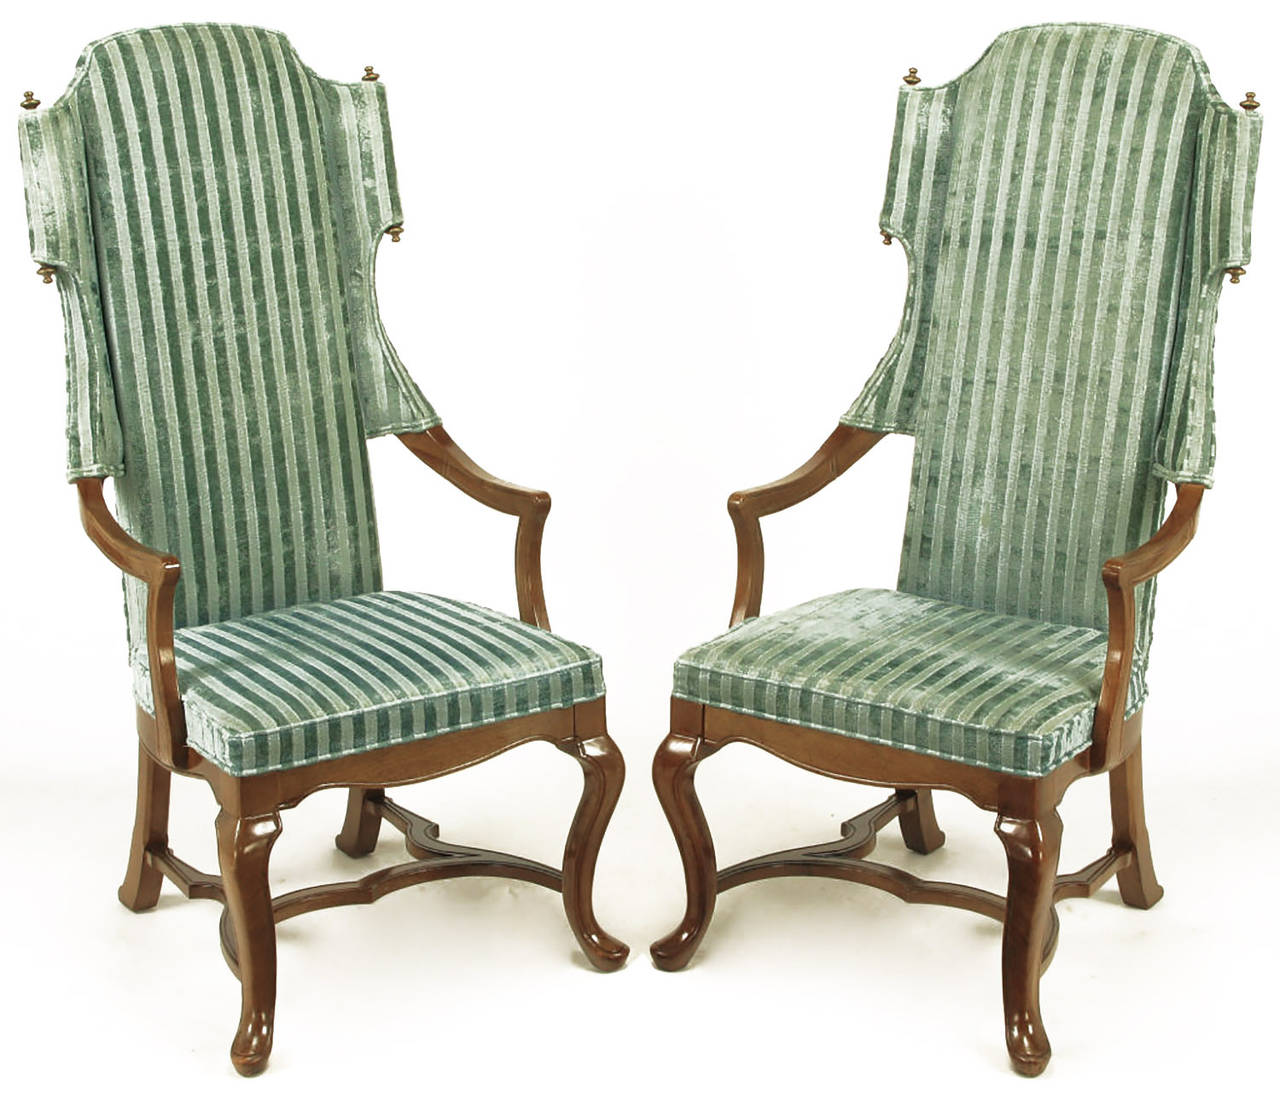 American Pair of Tall Wing Chairs in Cut Velvet with Brass Finials by Jim Peed For Sale